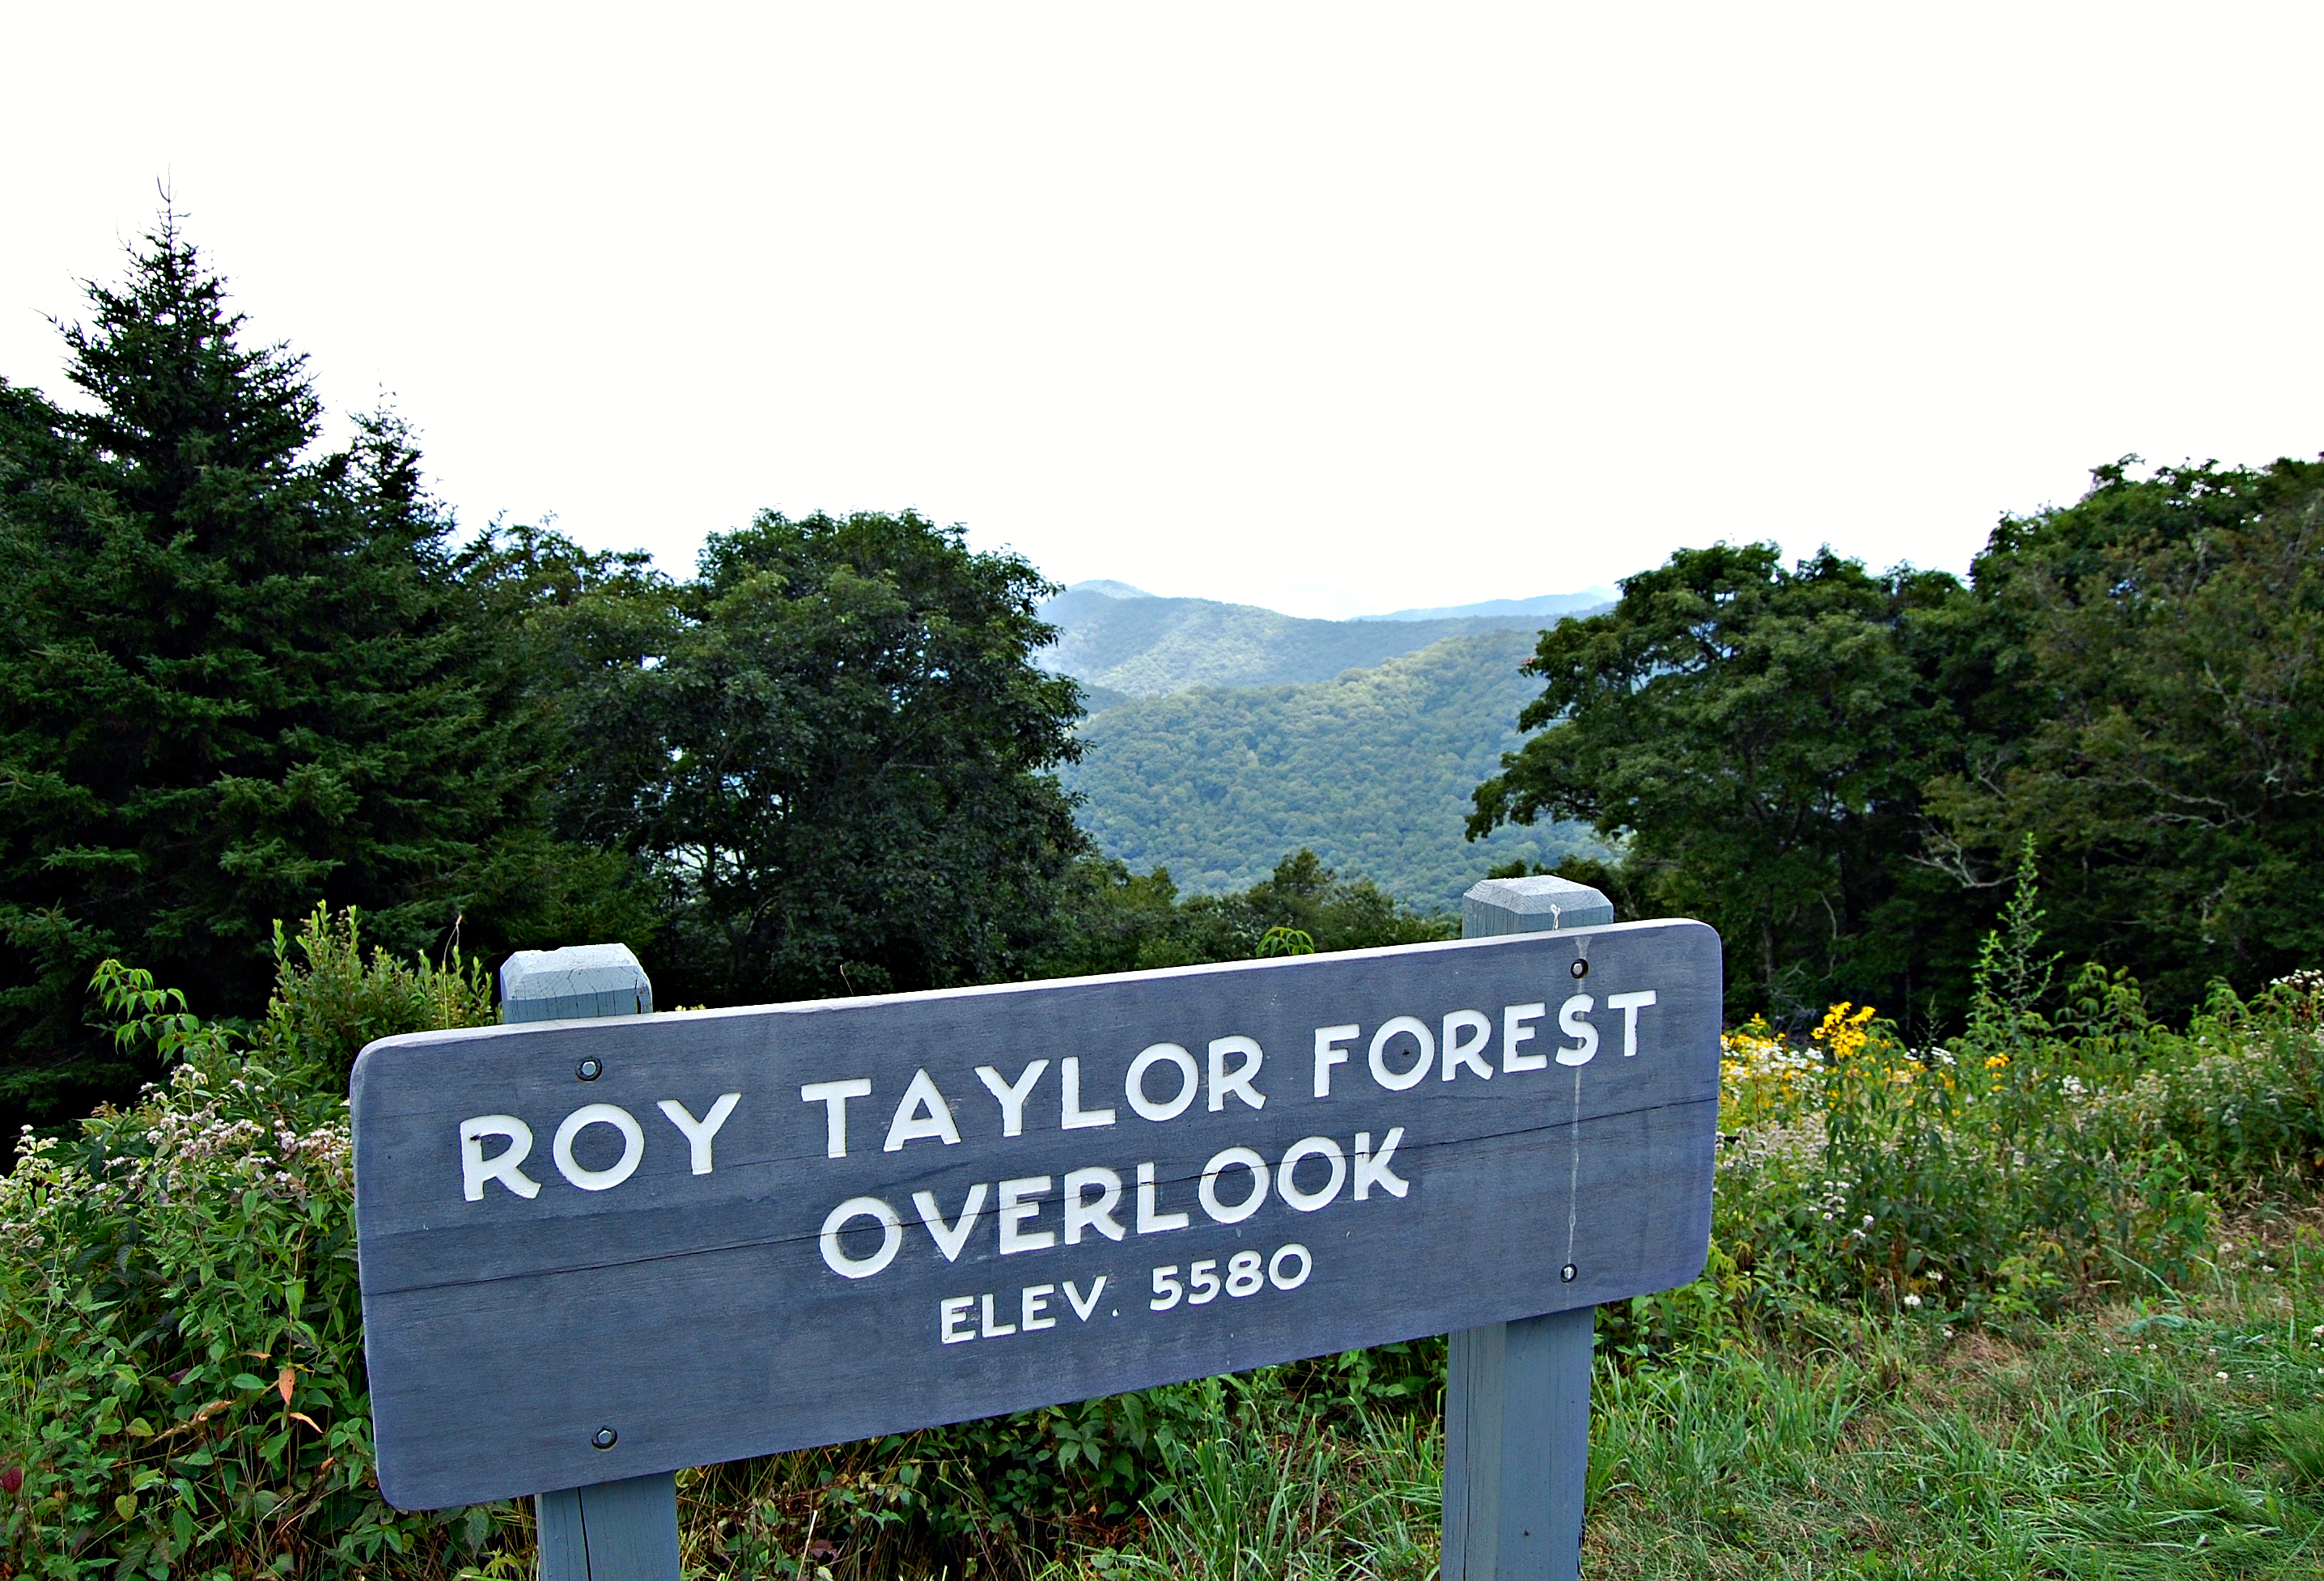 Roy Taylor Forest Overlook, Blue Ridge Parkway | Rosé and Reservations